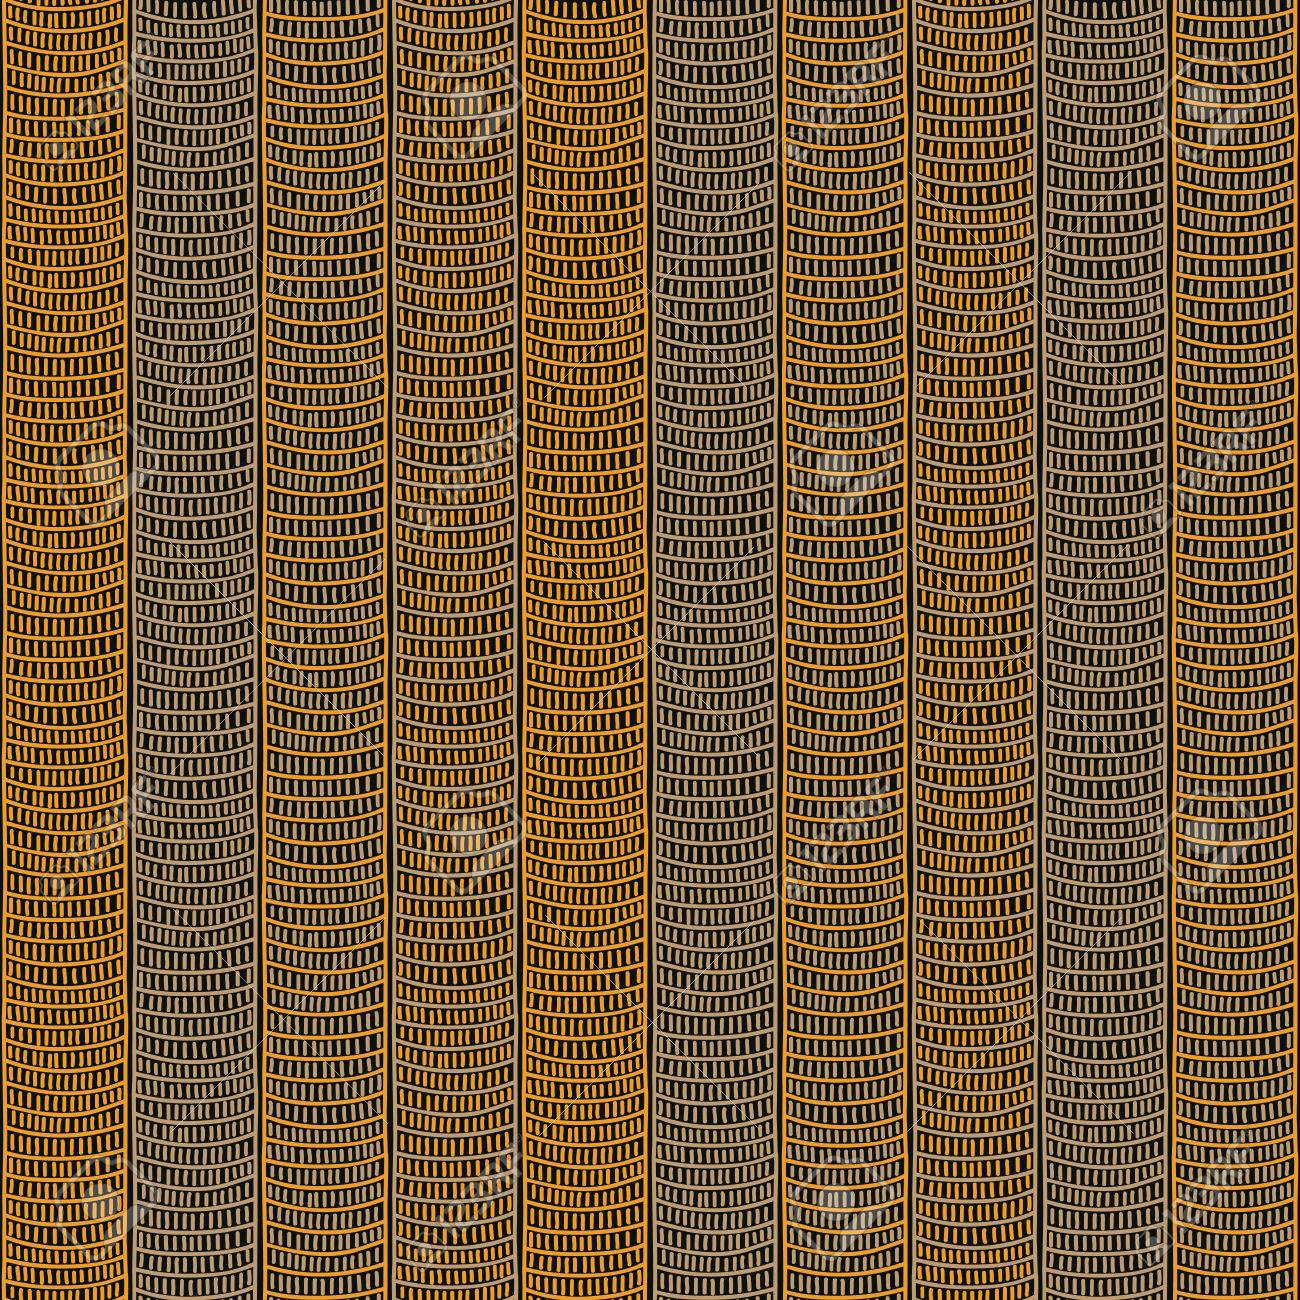 53501386 traditional african ornamental pattern stylized seamless texture with waves dark orange african patt